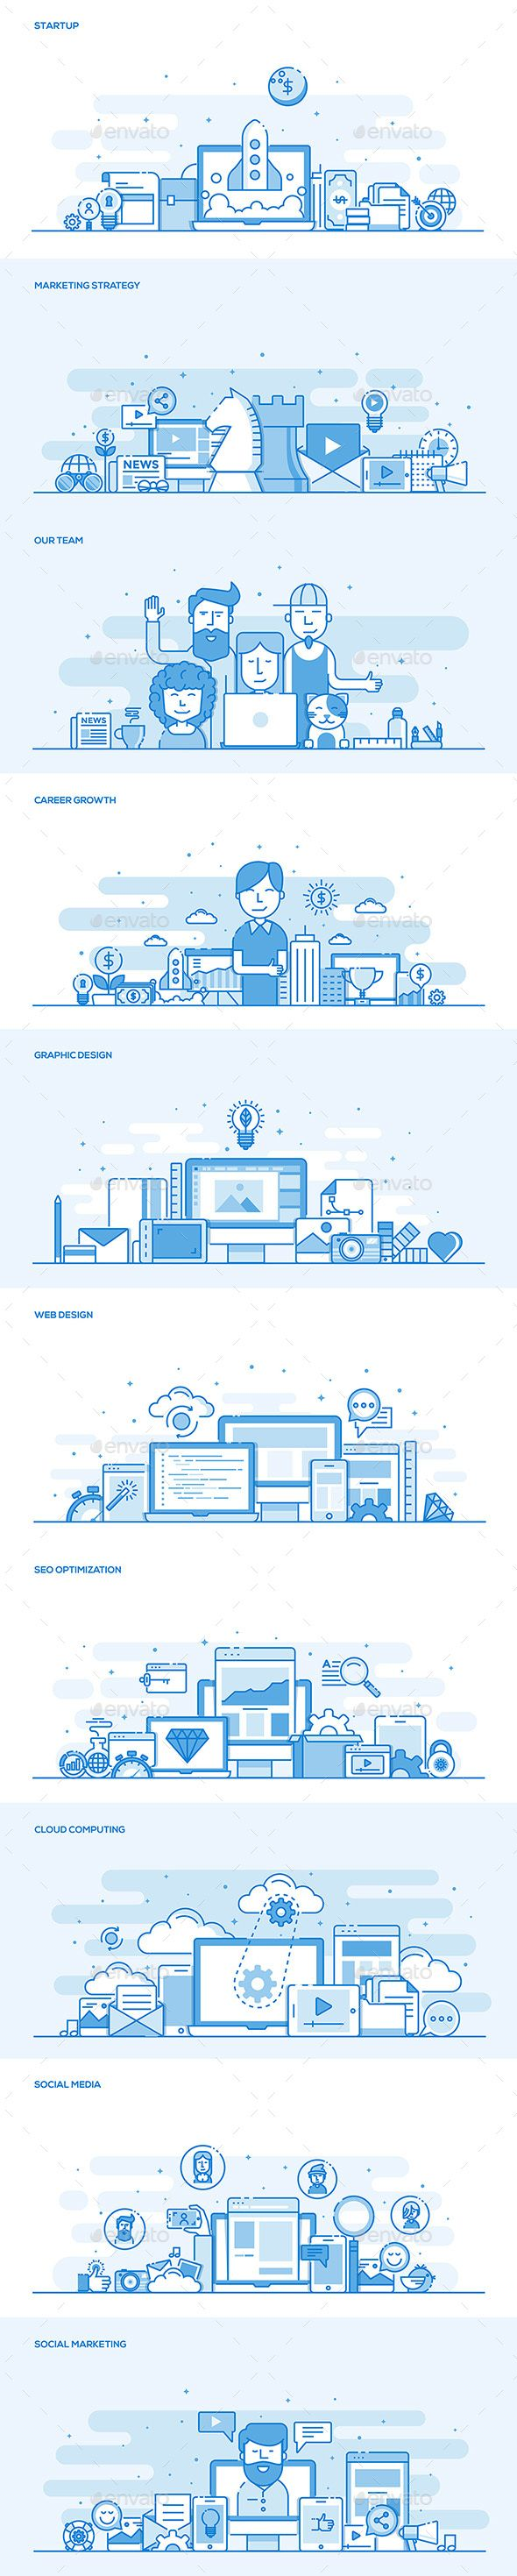 Set of Flat Line Color Banners by graphics4u Set of Flat Line Color Banners Design Concept on various topics of Business, Banking, Career, Team, Seo, Coding, Travel, Vacation,